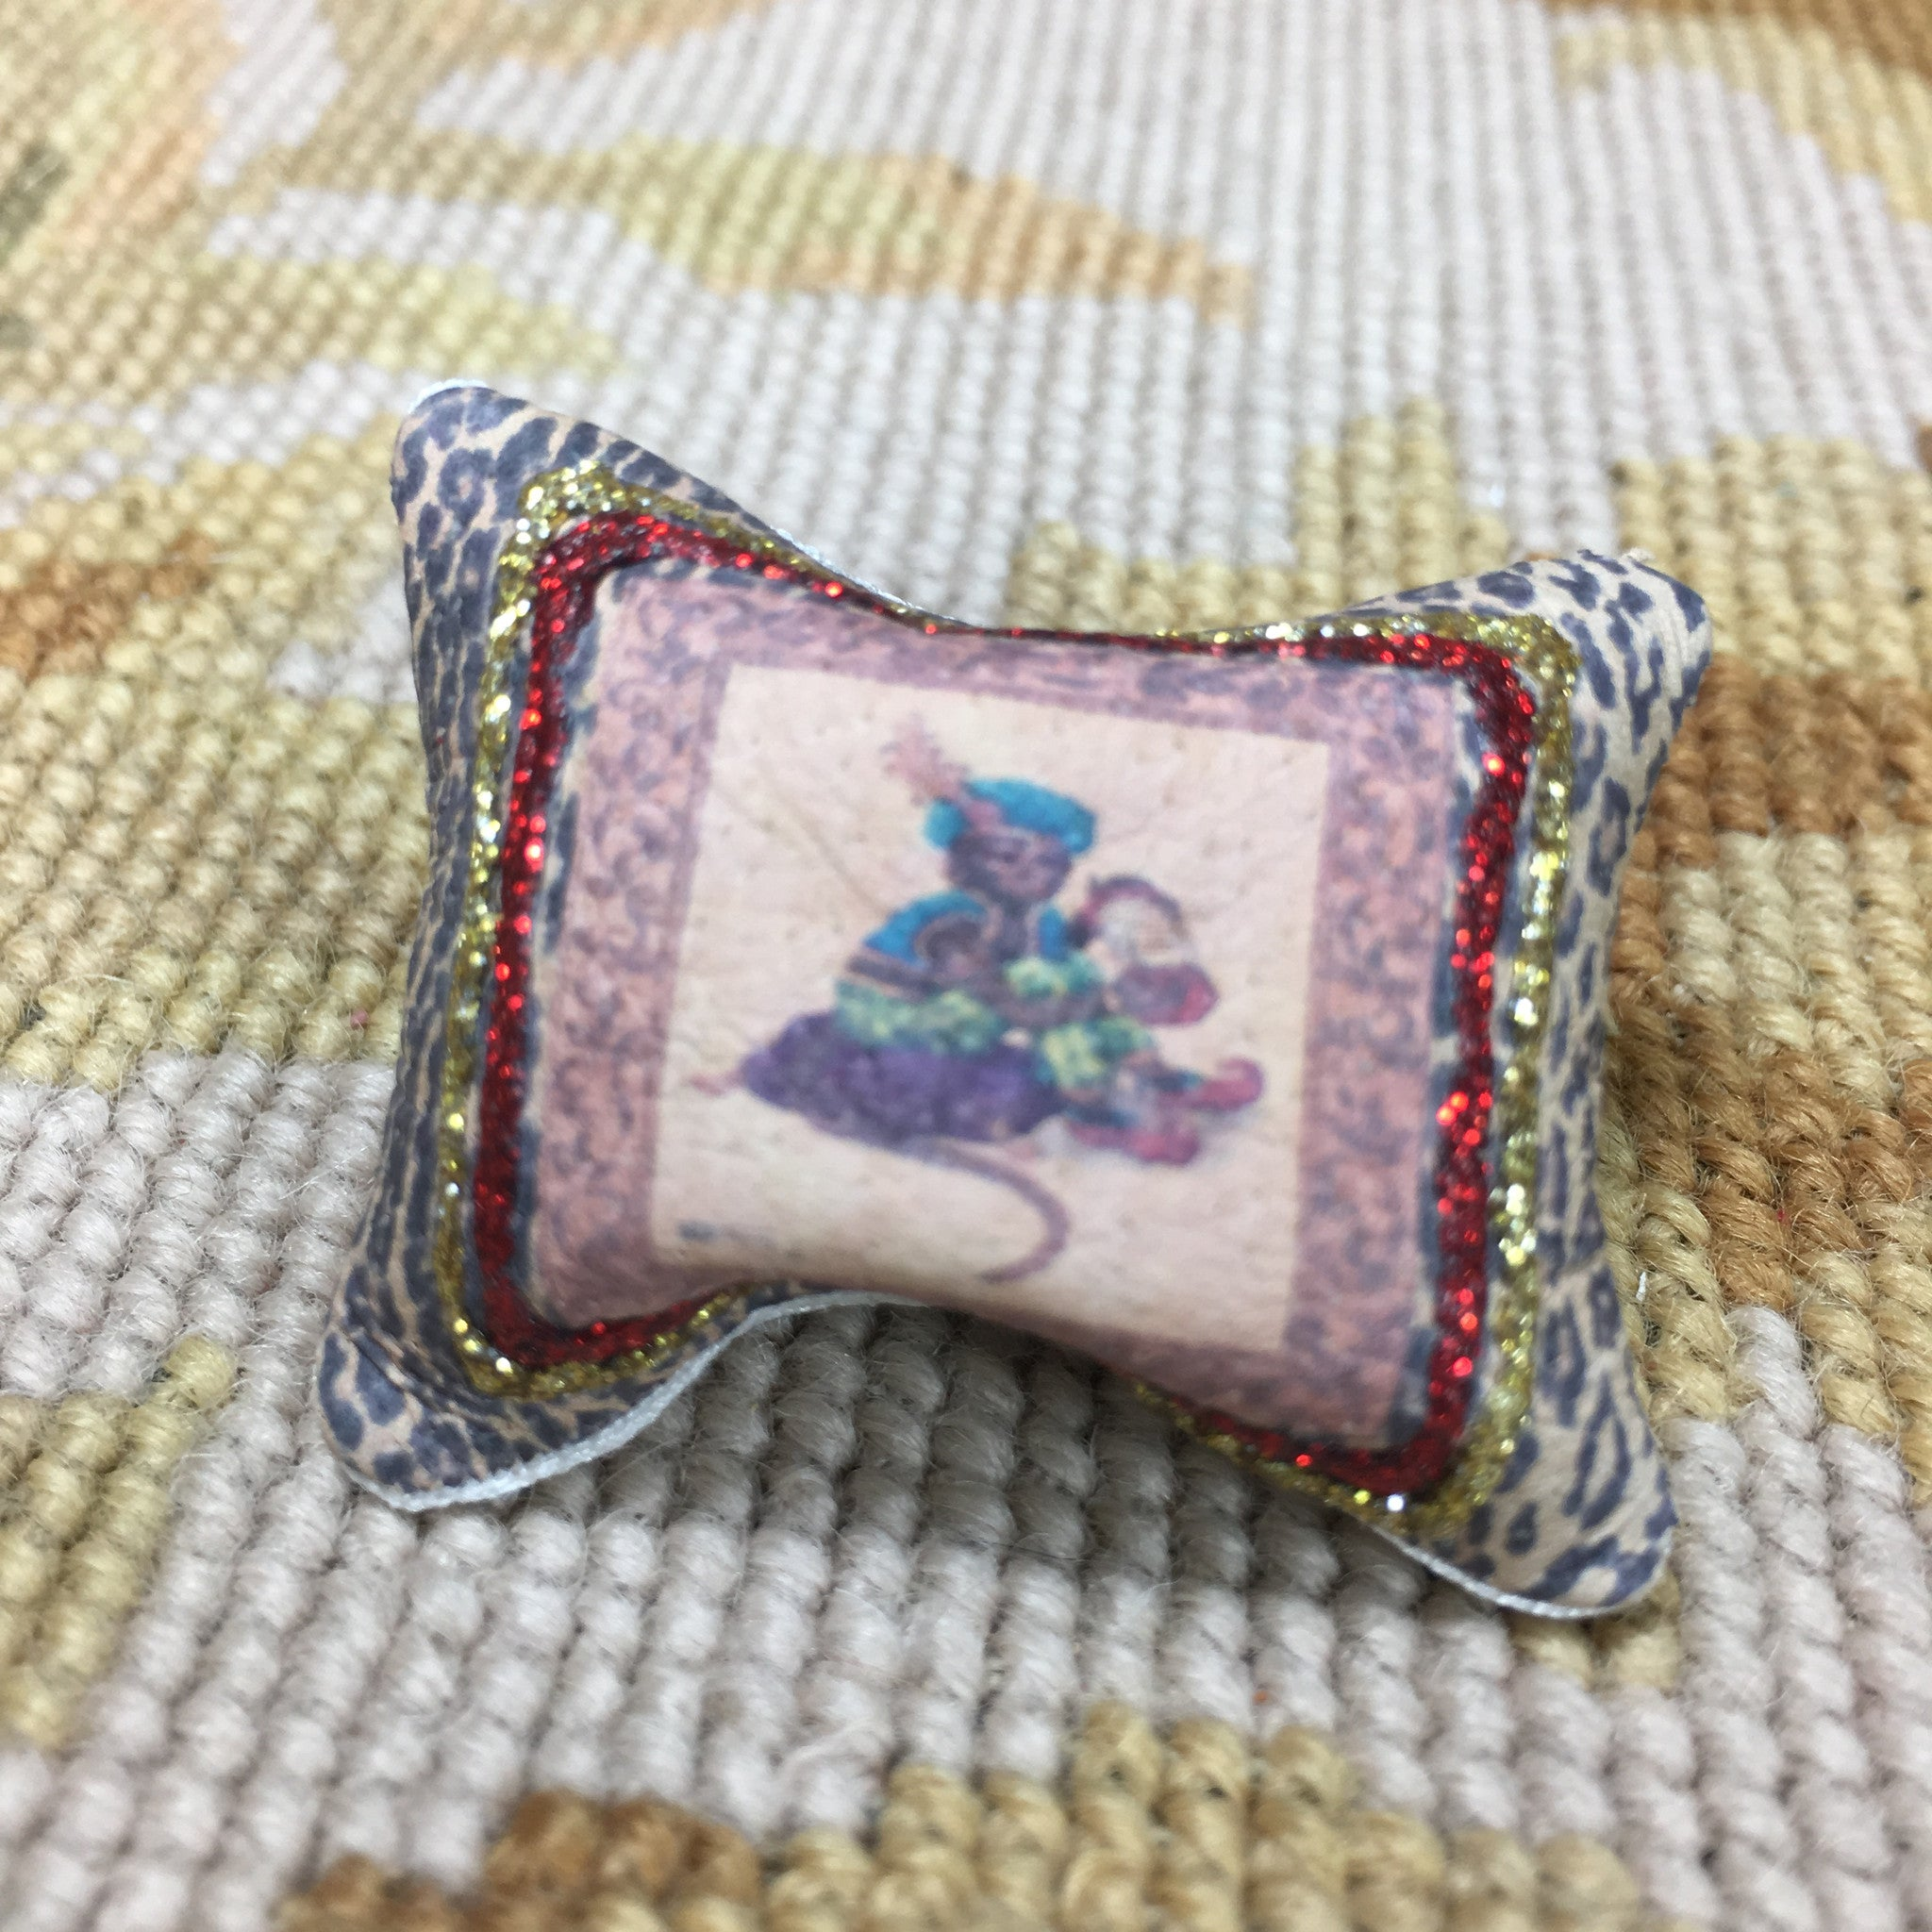 Pillow Cushion Monkey #3 - 1:12 Dollhouse Miniature